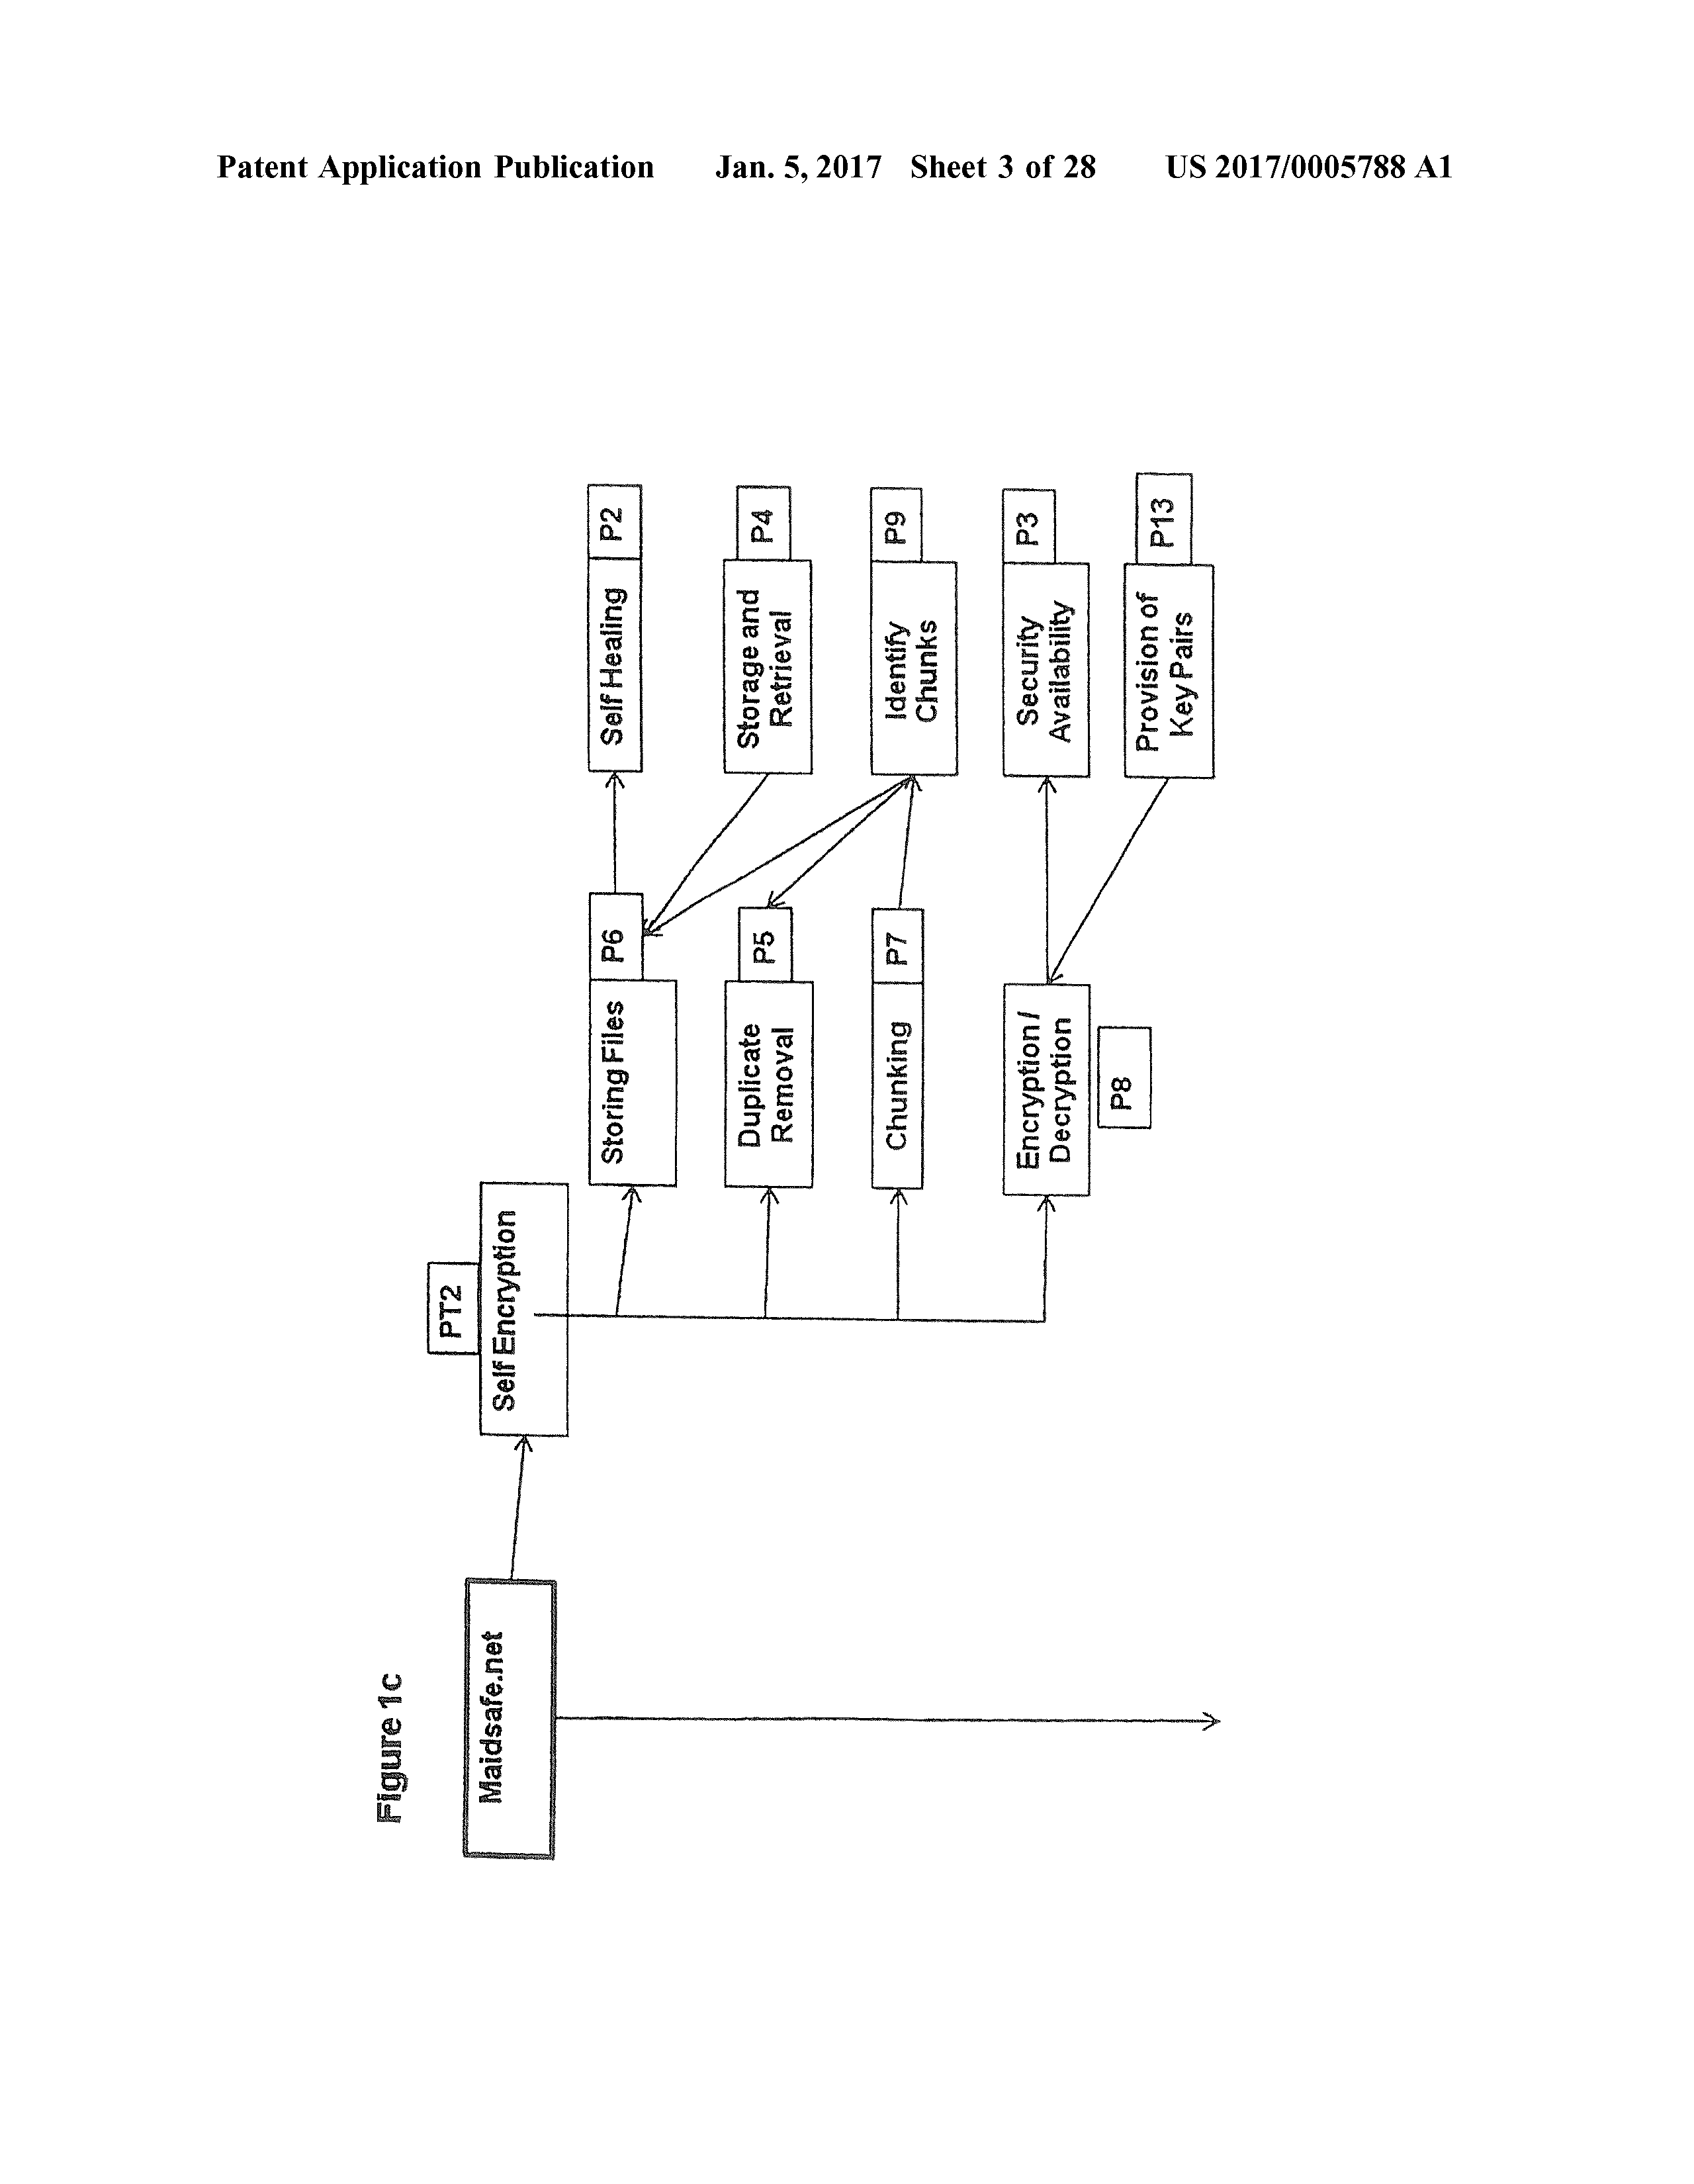 US 2017/0005788 A1 - Communication System And Method - The